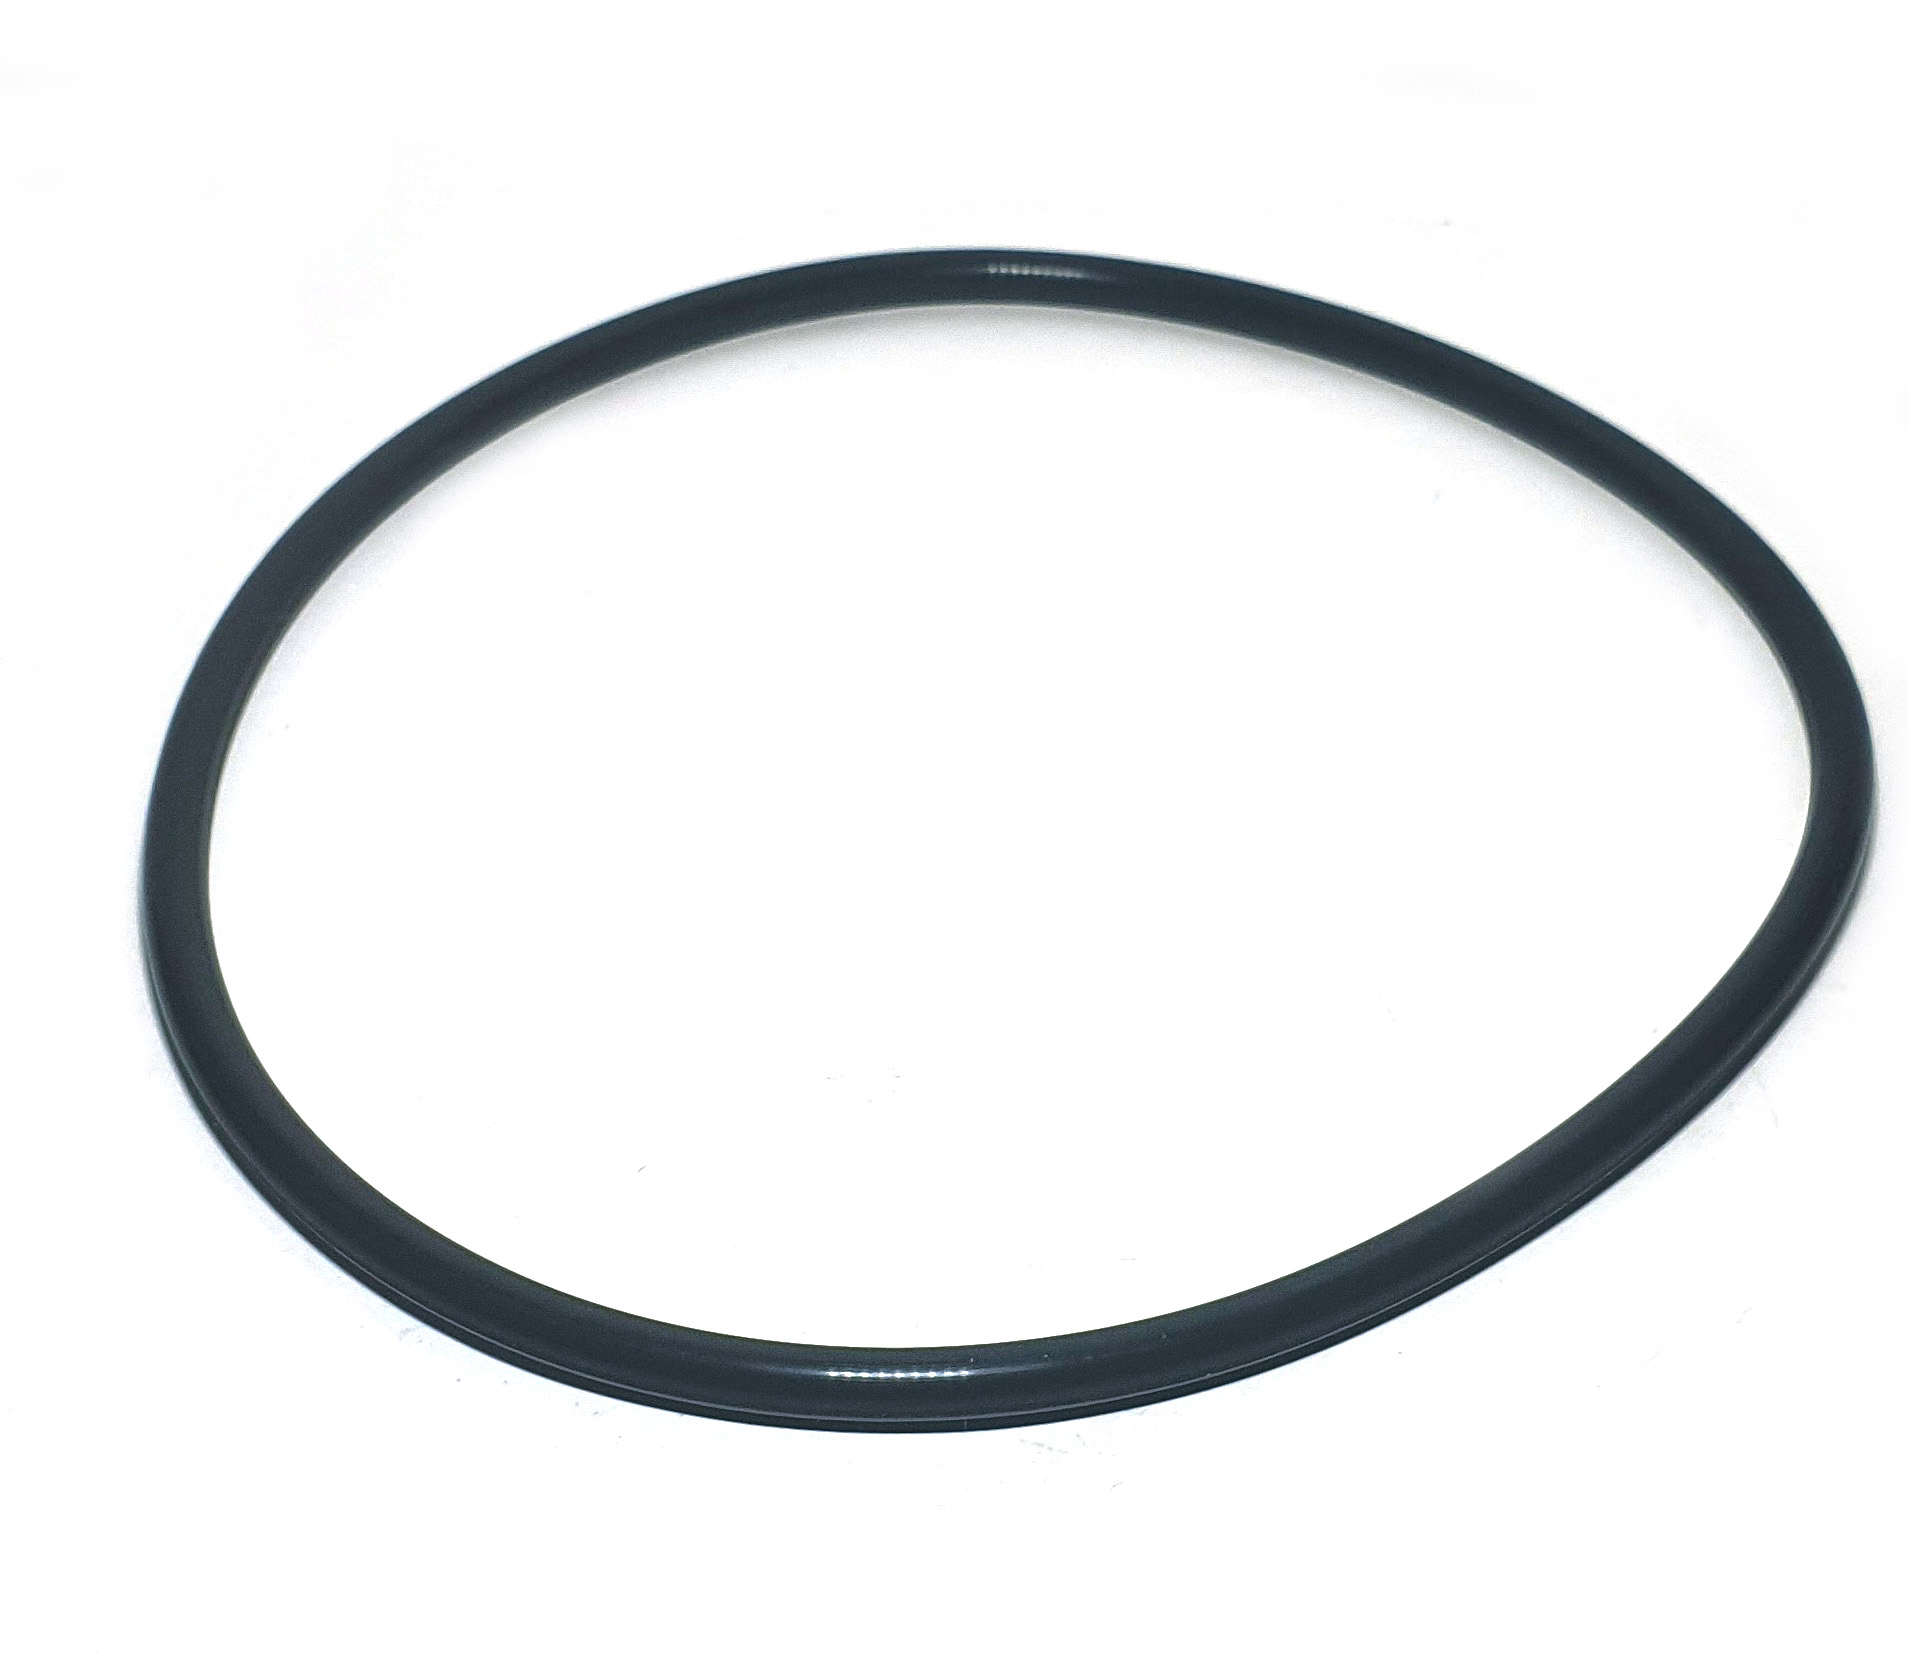 anel ved bba d'agua mitsubishi S12R-Y1PTA-2 - pn 05946-01401